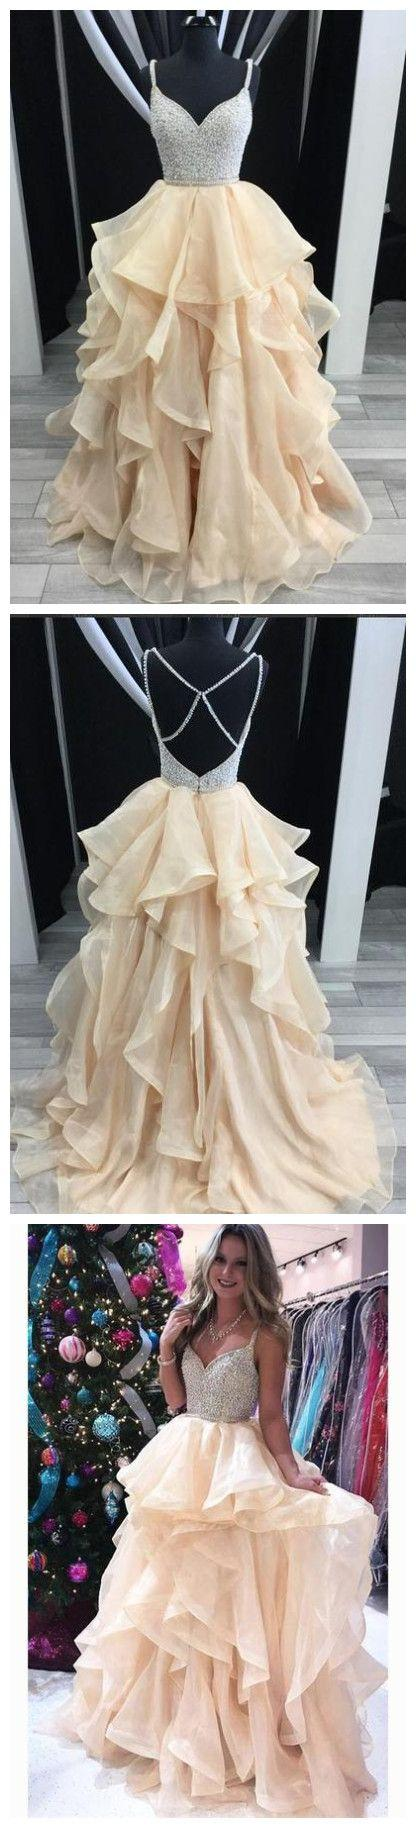 Mariage - 2018 A-line Prom Dresses Spaghetti Straps Beading Long Prom Dress Evening Dresses AMY606